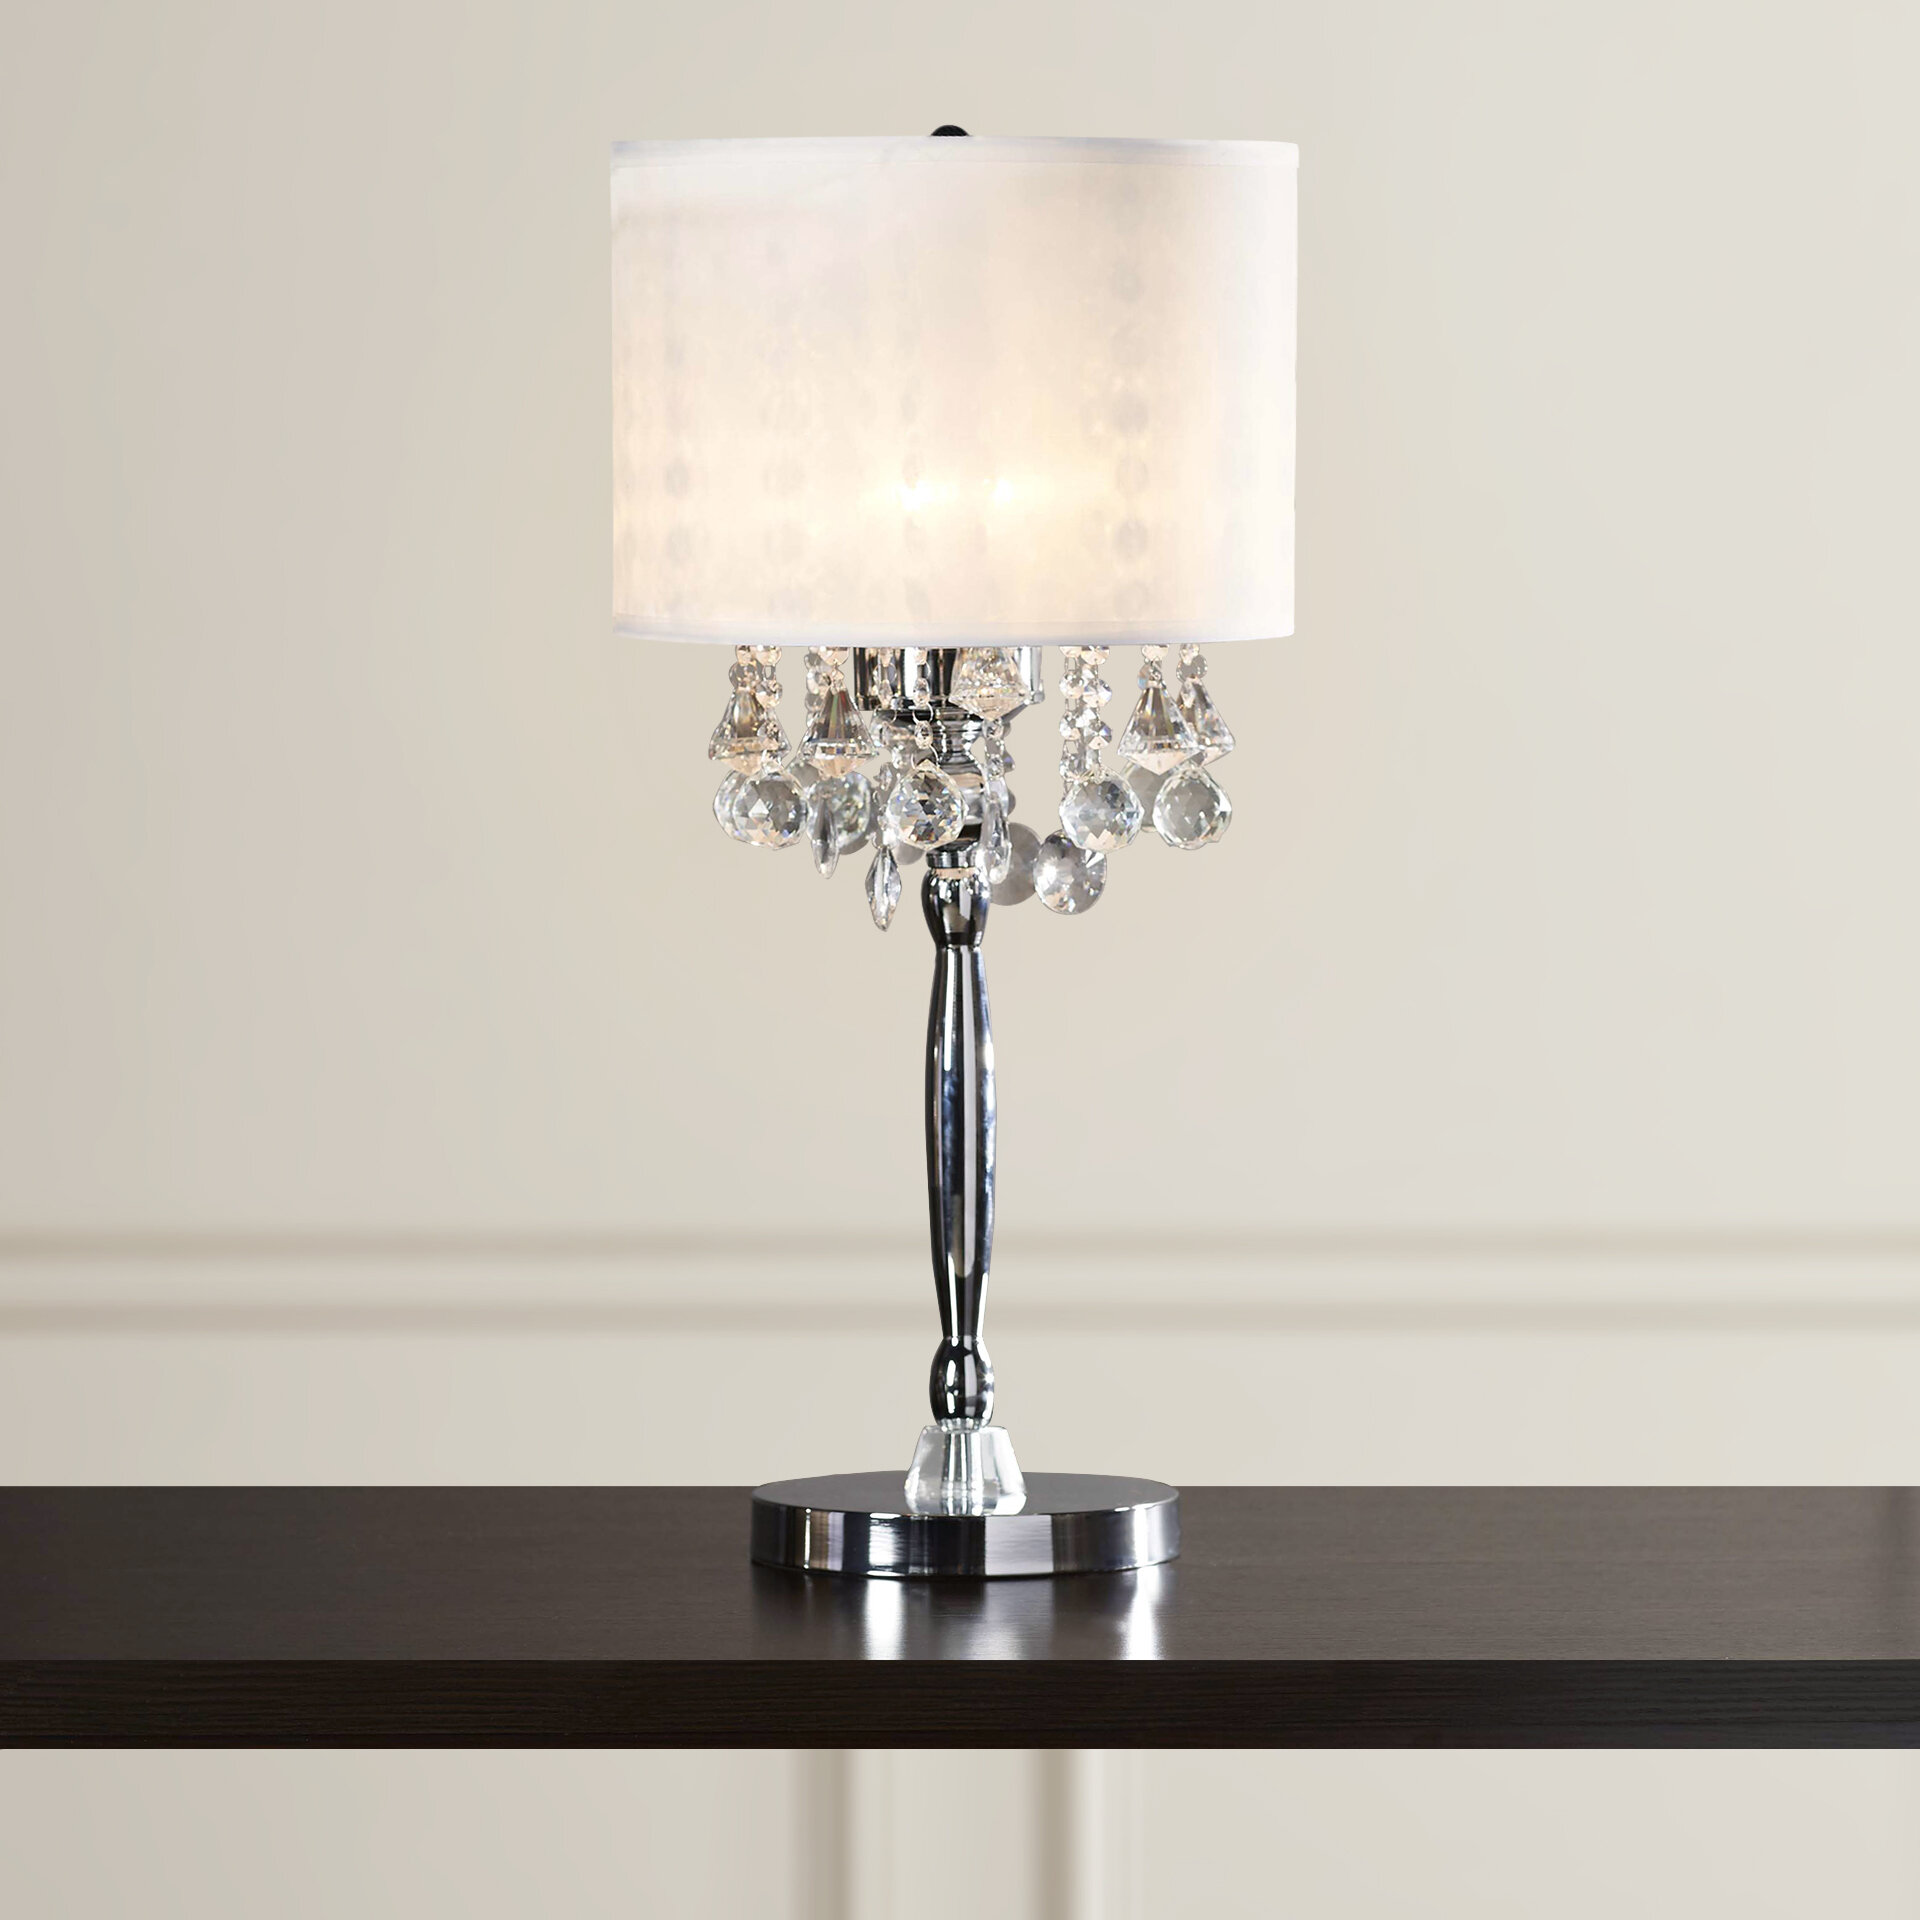 Willa Arlo Interiors Kitson Crystal 3 Light 30 Table Lamp With Drum